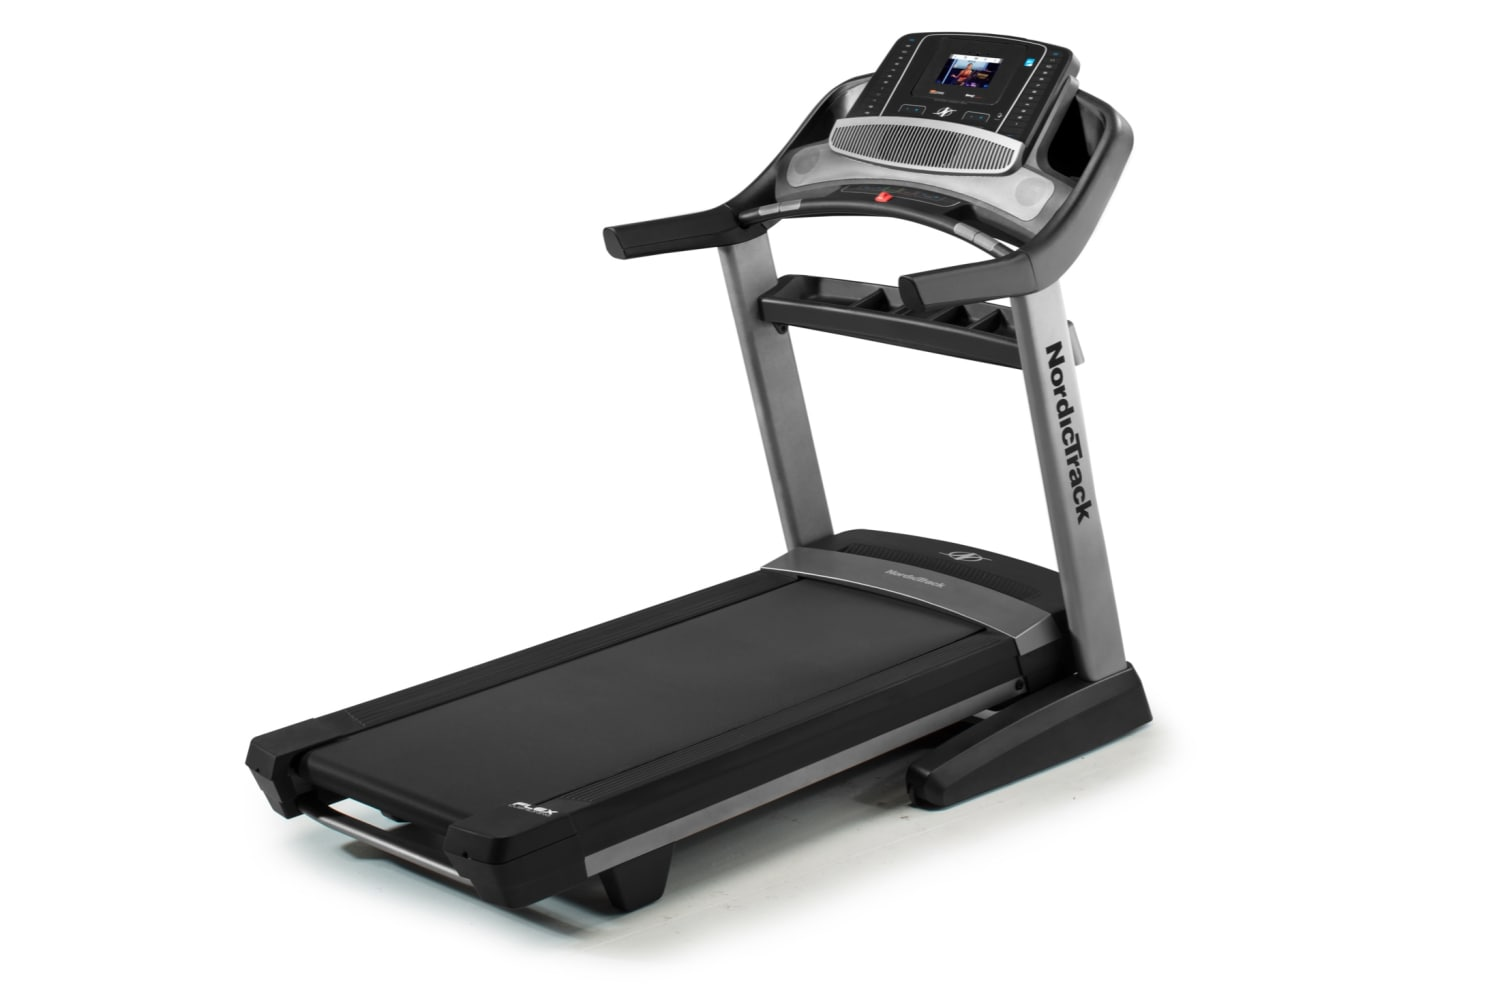 Nordictrack commercial 1750 treadmill assembly and tips video.